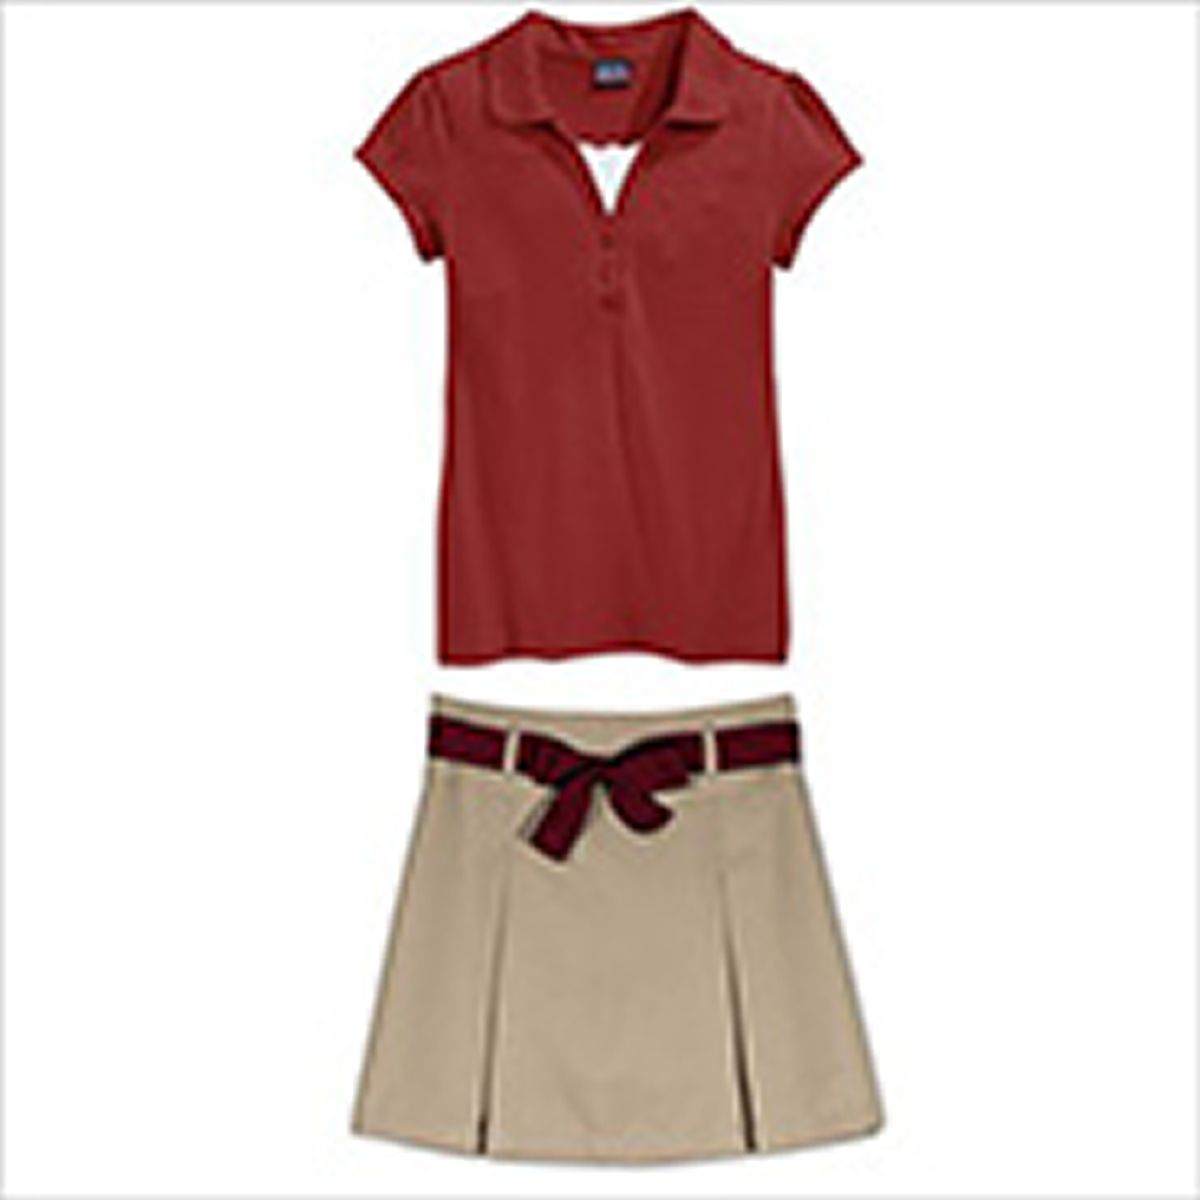 Girls' Uniforms